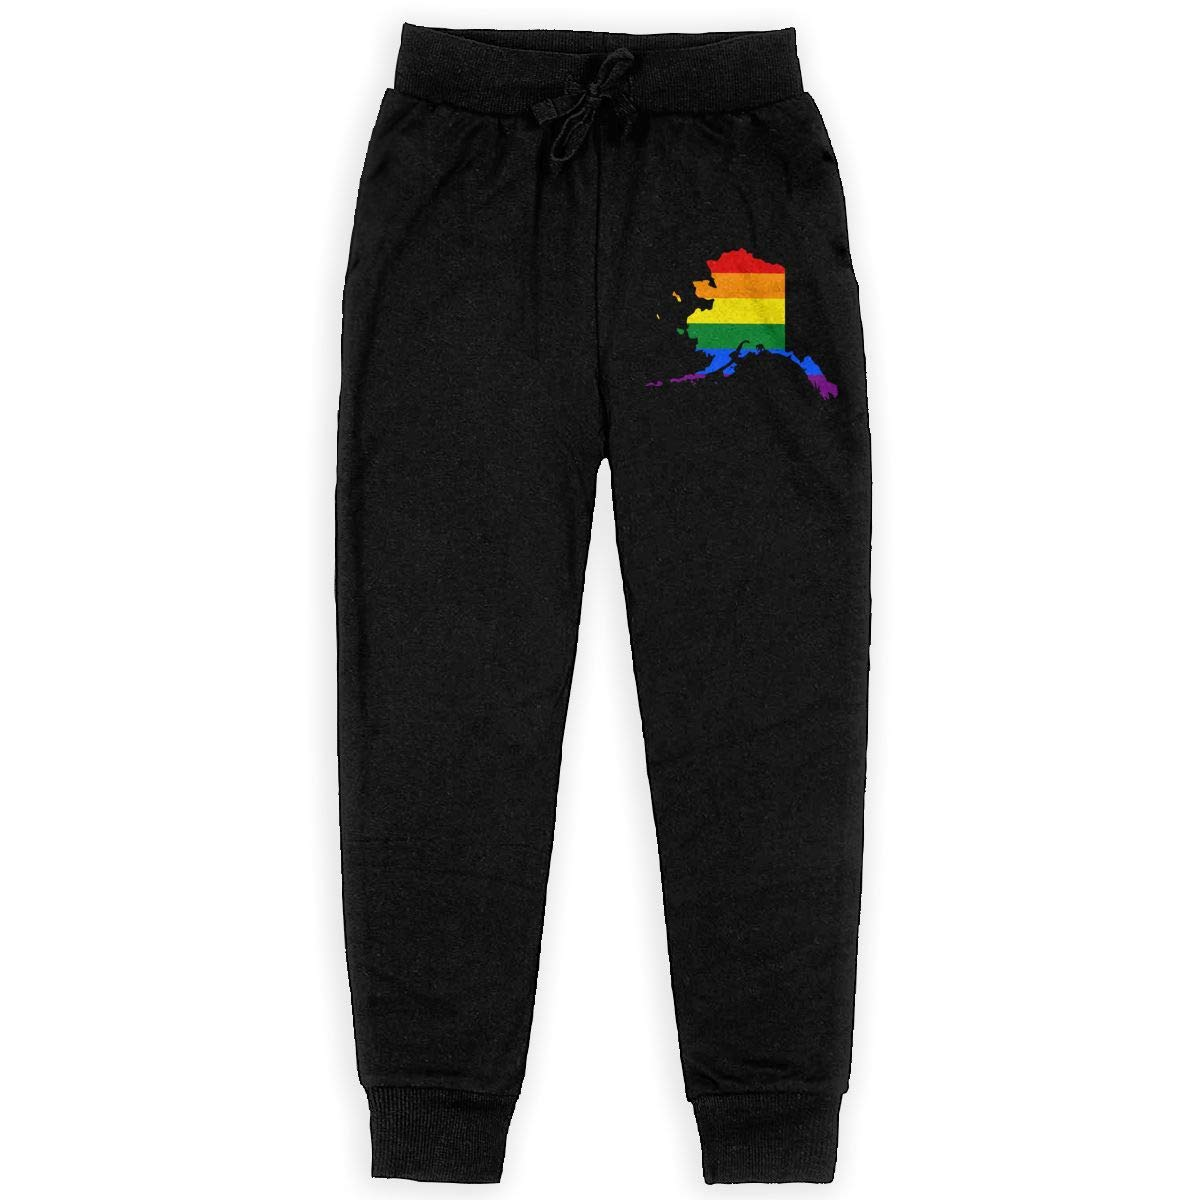 Alaska Rainbow Flag Teen Sweatpants Boys Jogger Pants Boys Fleece Pants Black